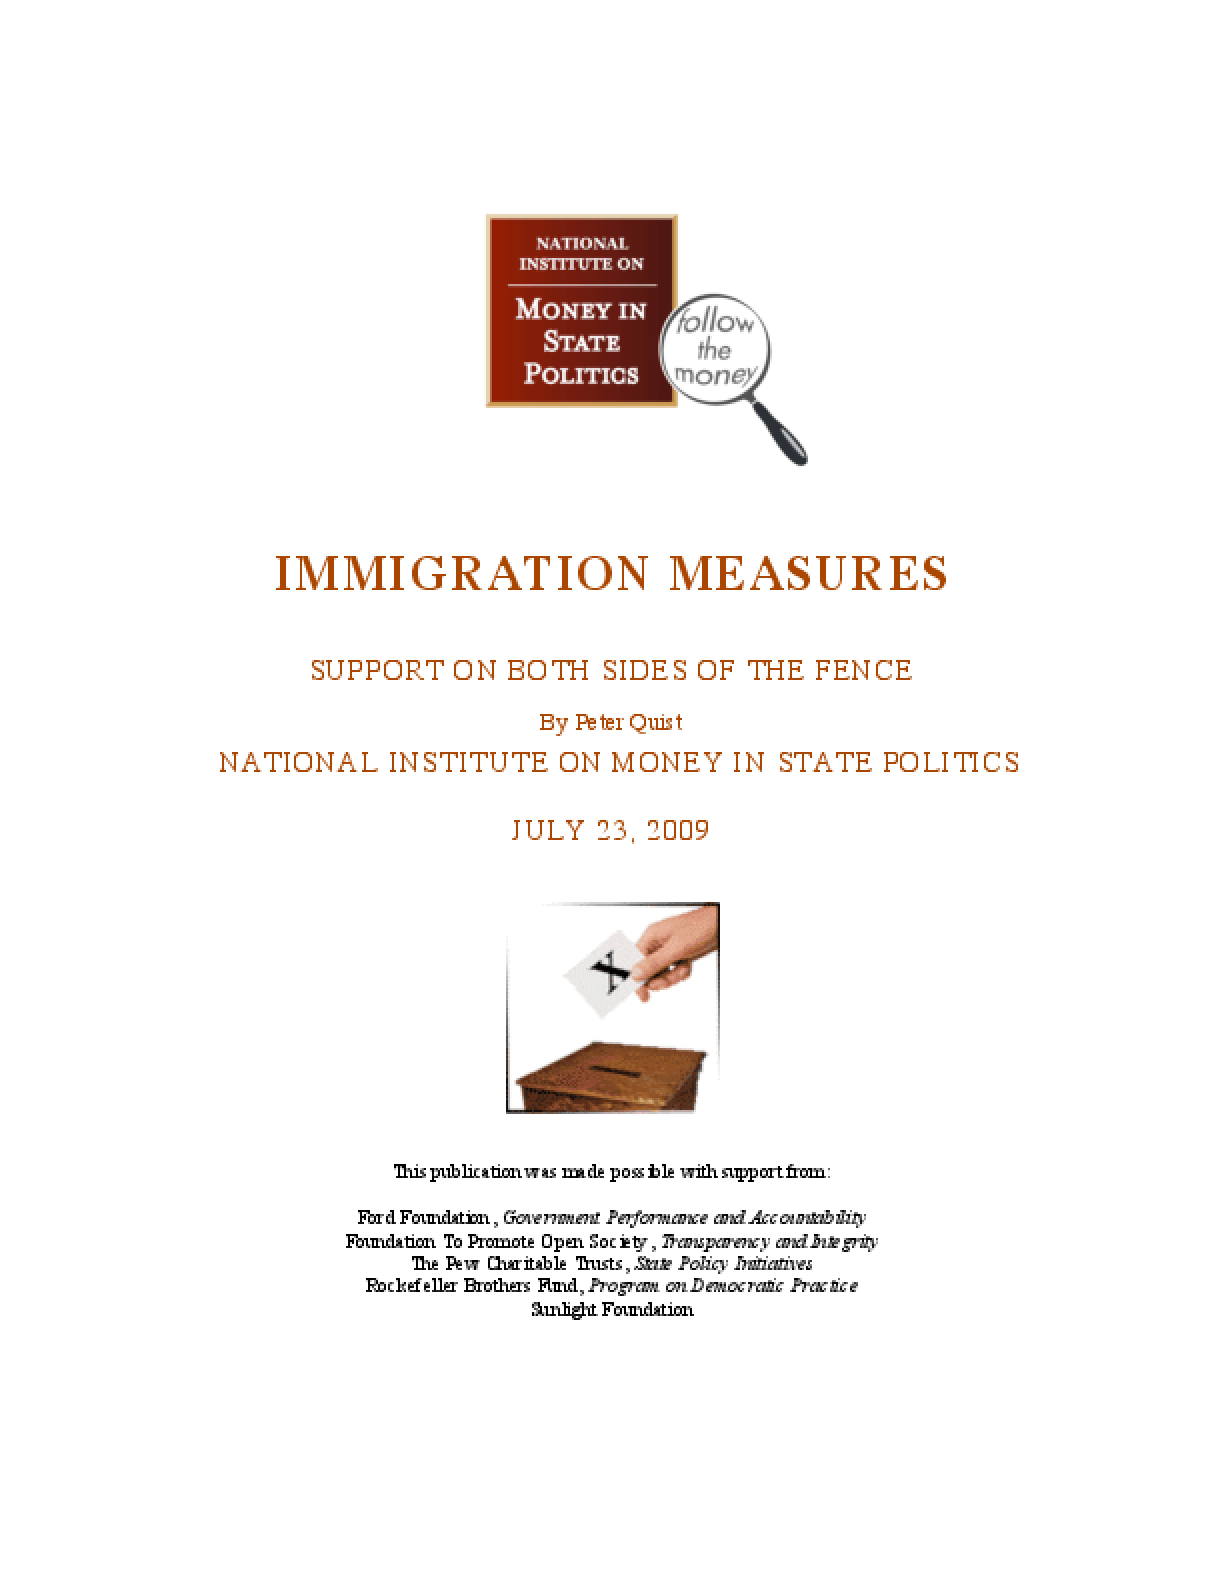 Immigration Measures: Support On Both Sides Of The Fence